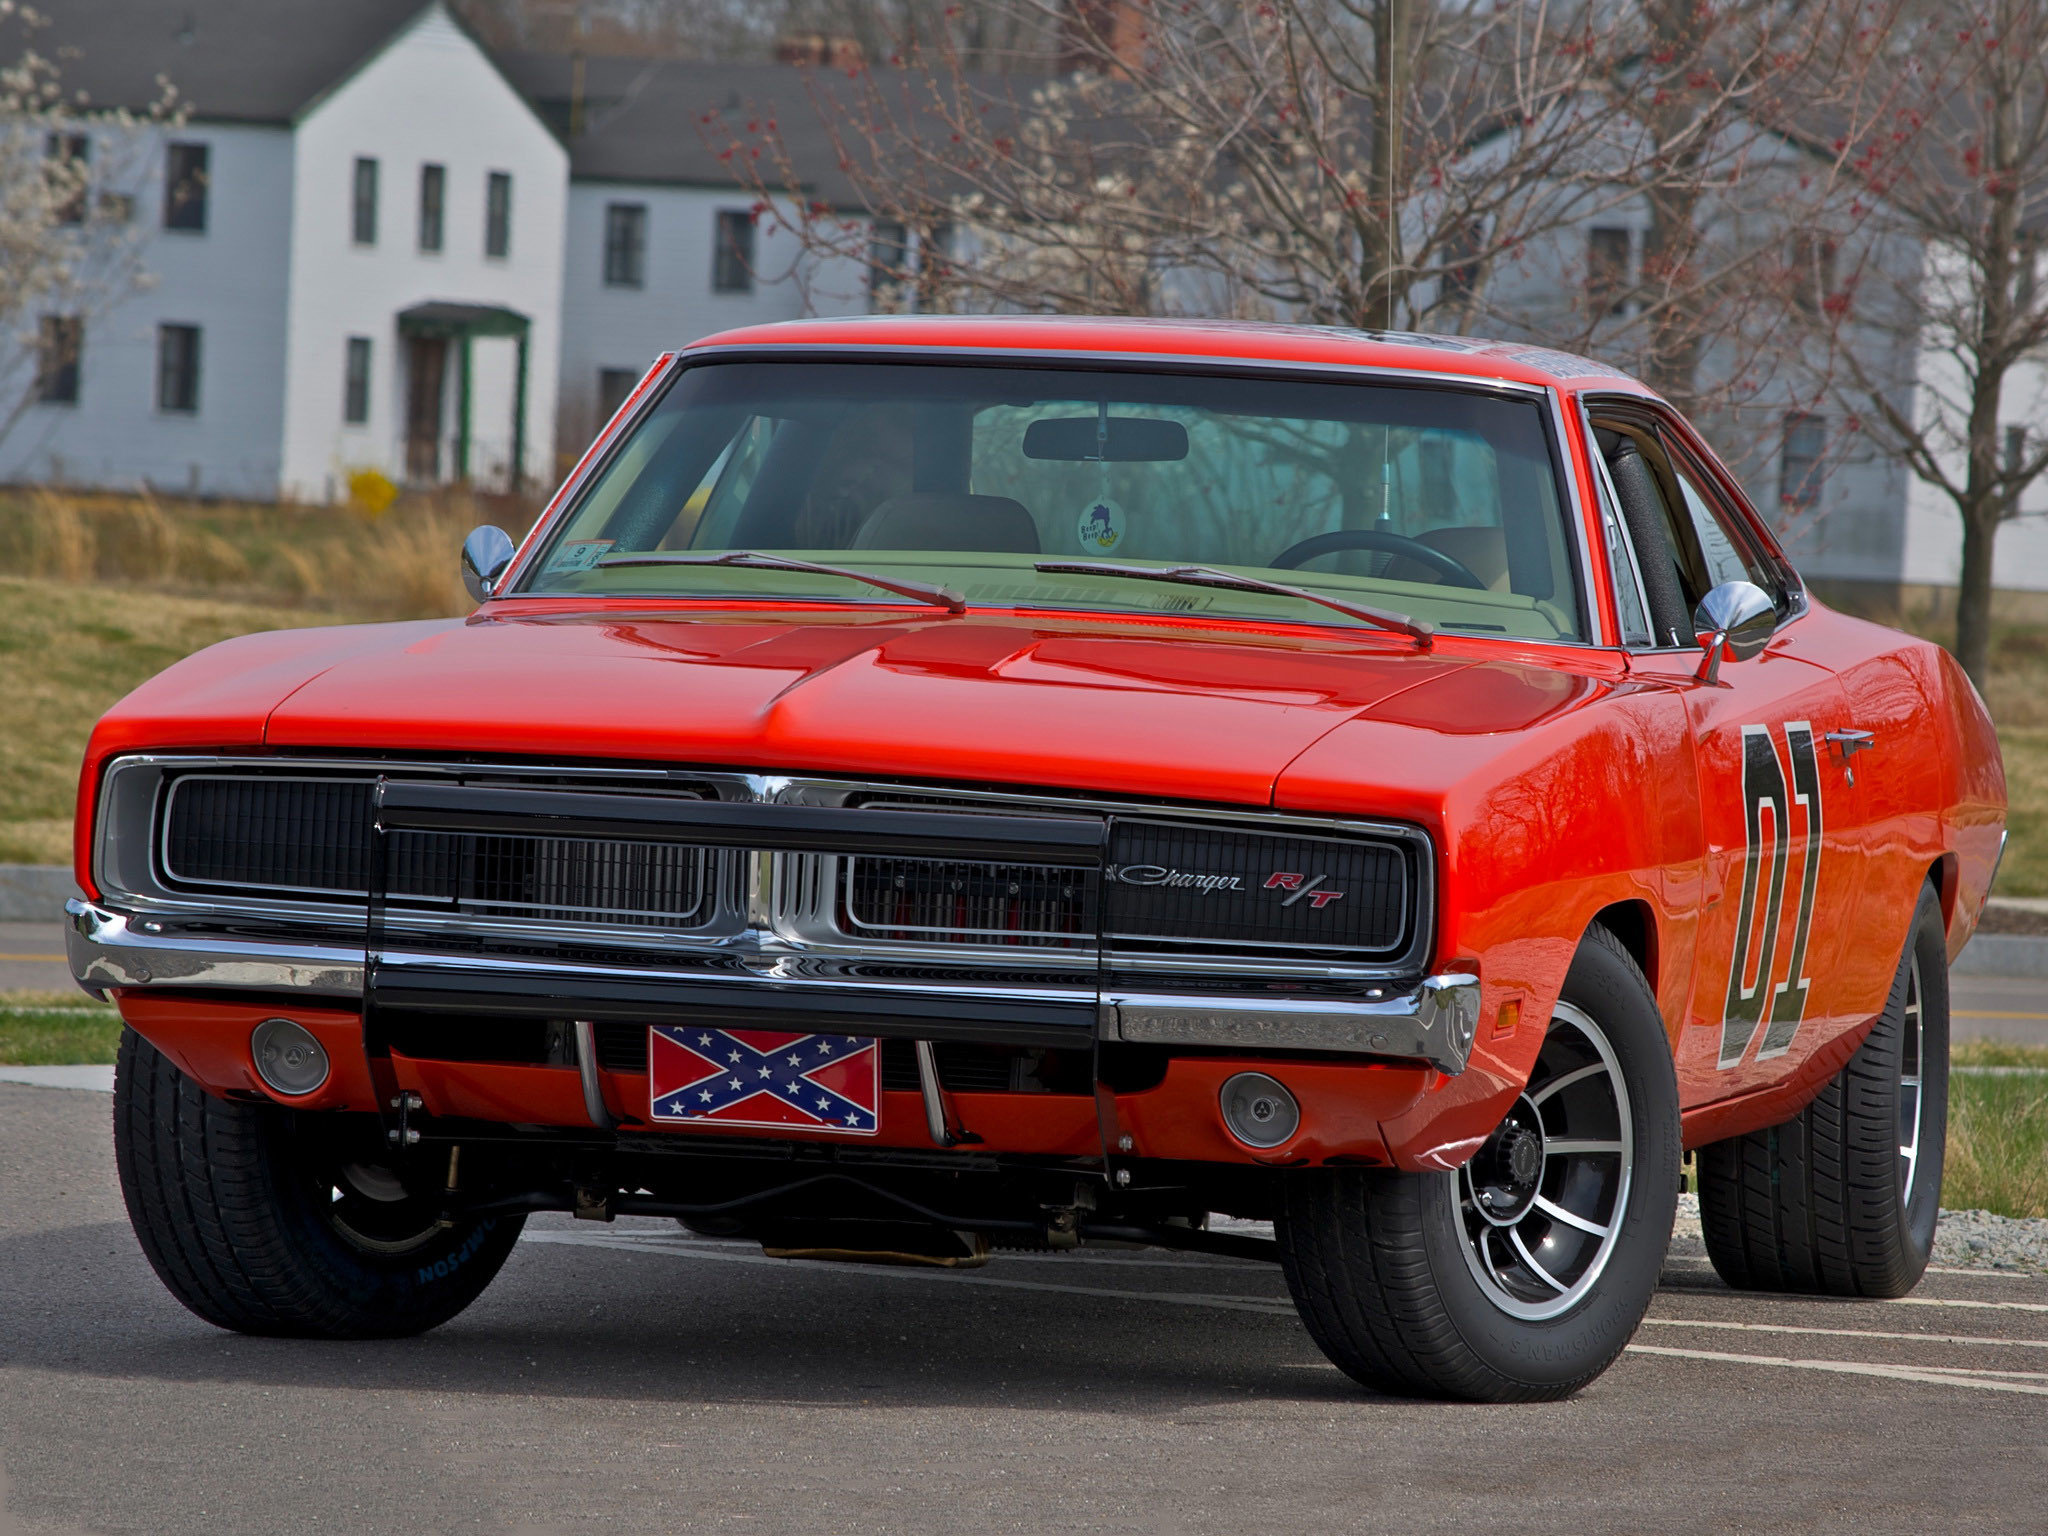 2048x1536 1969 Dodge Charger General Lee muscle hot rod rods stunt mopar classic f  wallpaper |  | 106339 | WallpaperUP